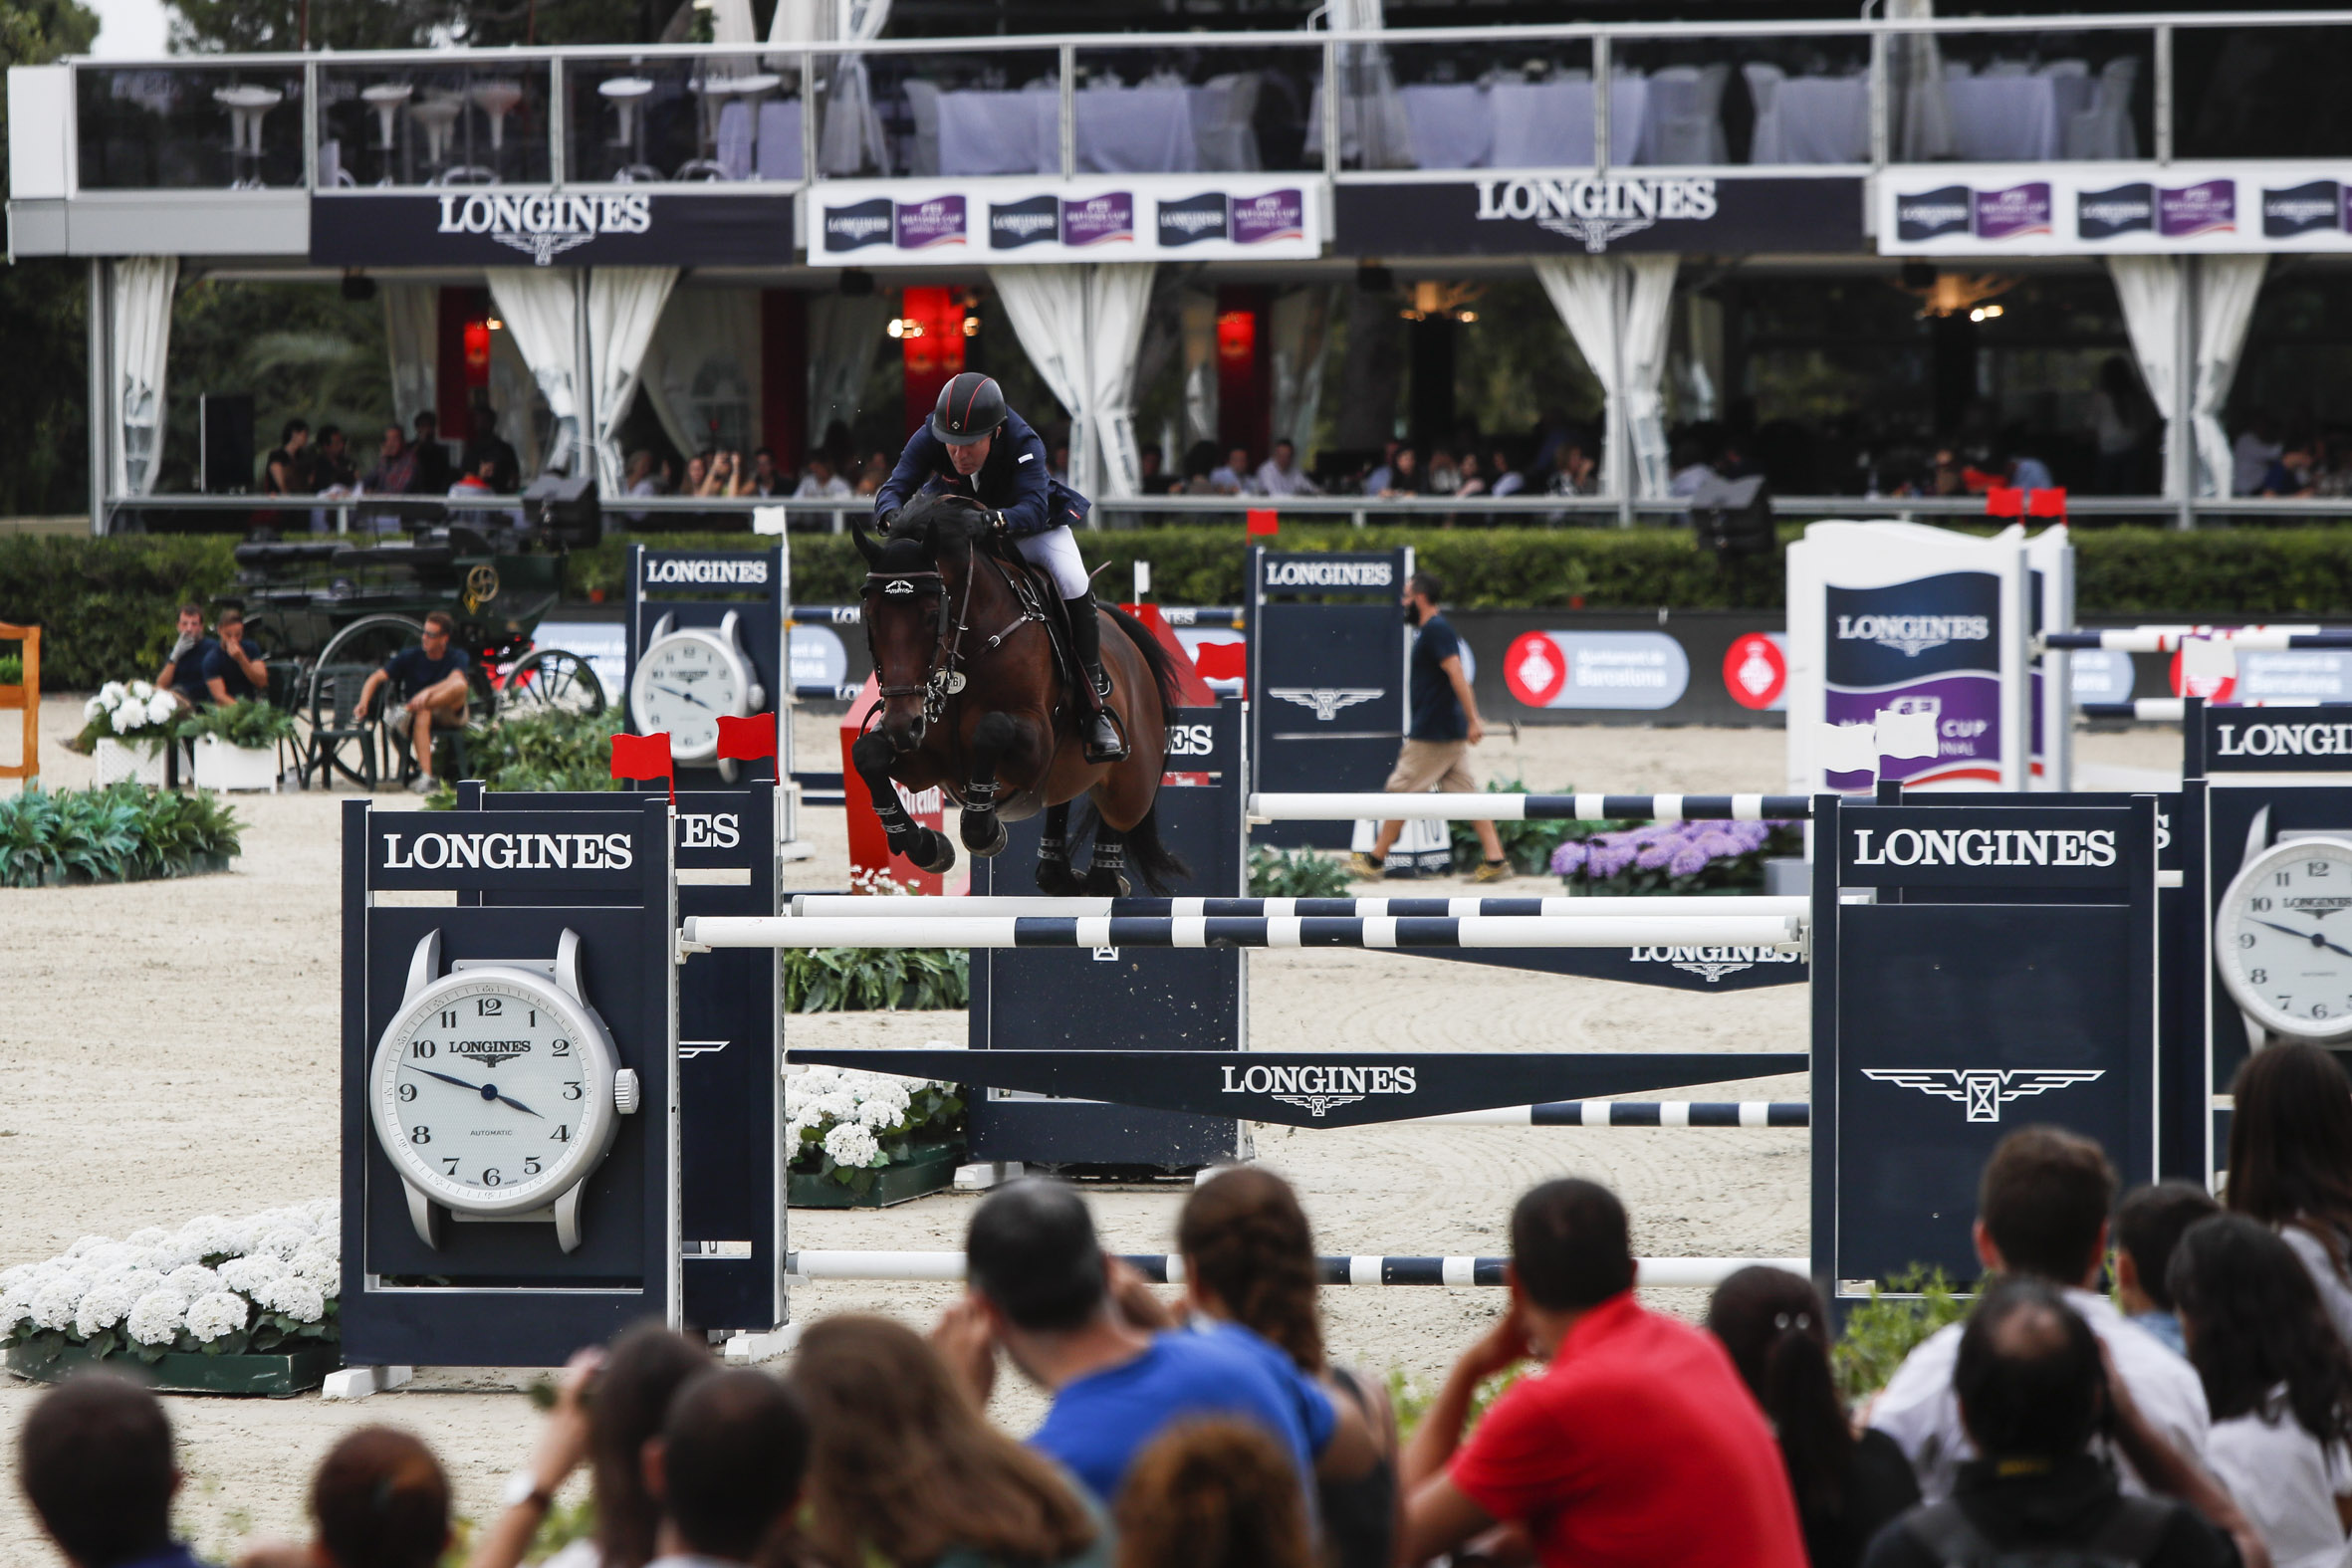 Ticket for the CSIO Barcelona 2018 are now available